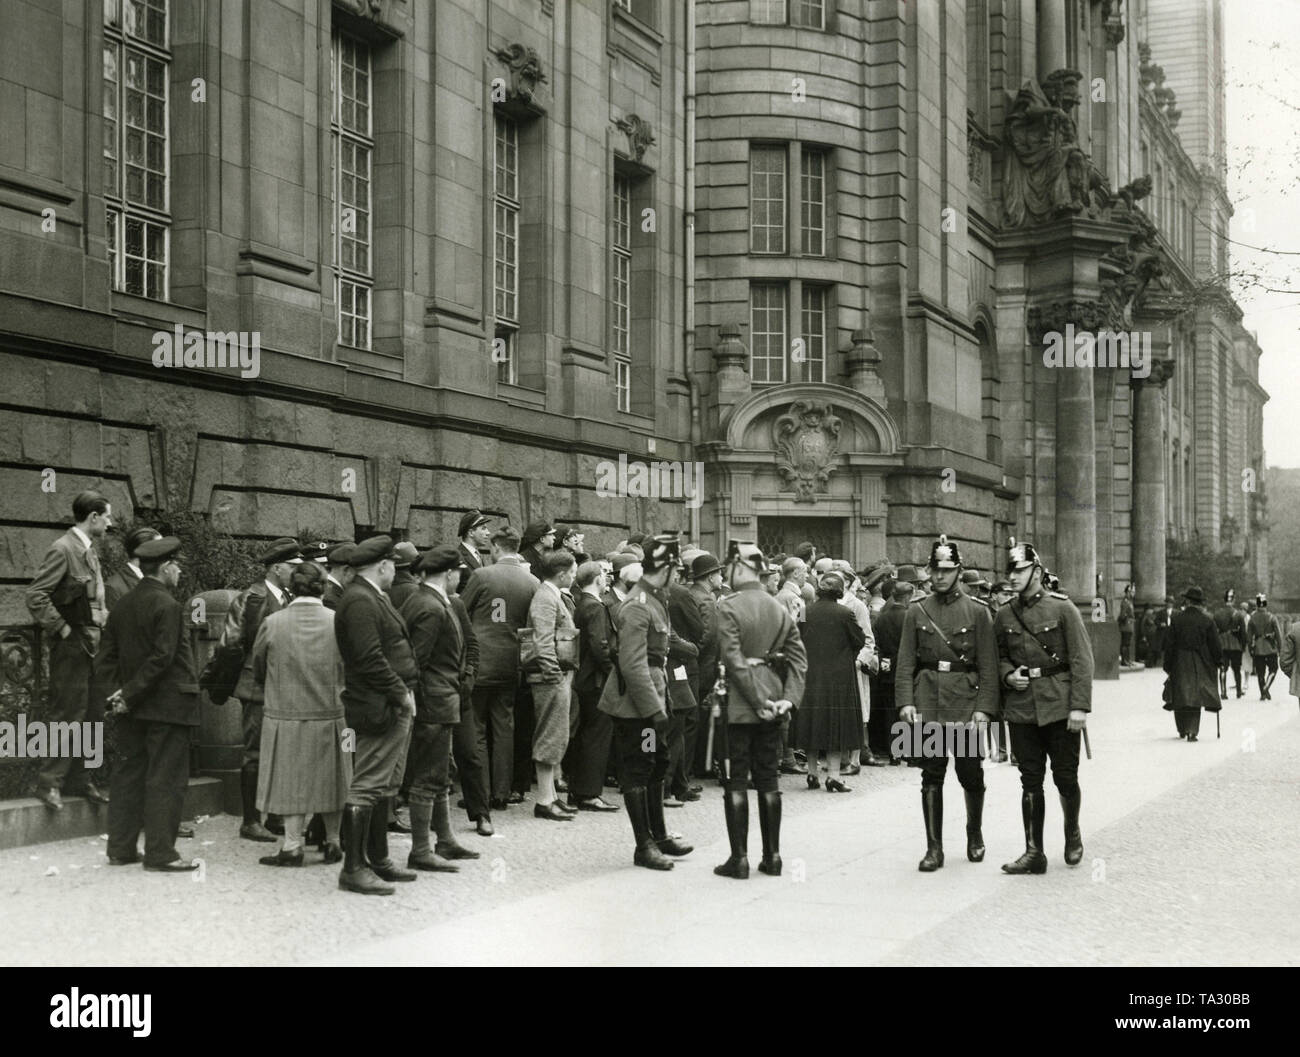 Onlookers are waiting outside the Criminal Court Moabit for the arrival of witnesses. On this day Adolf Hitler was invited as a witness in the Eden Dance Palace trial. - Stock Image